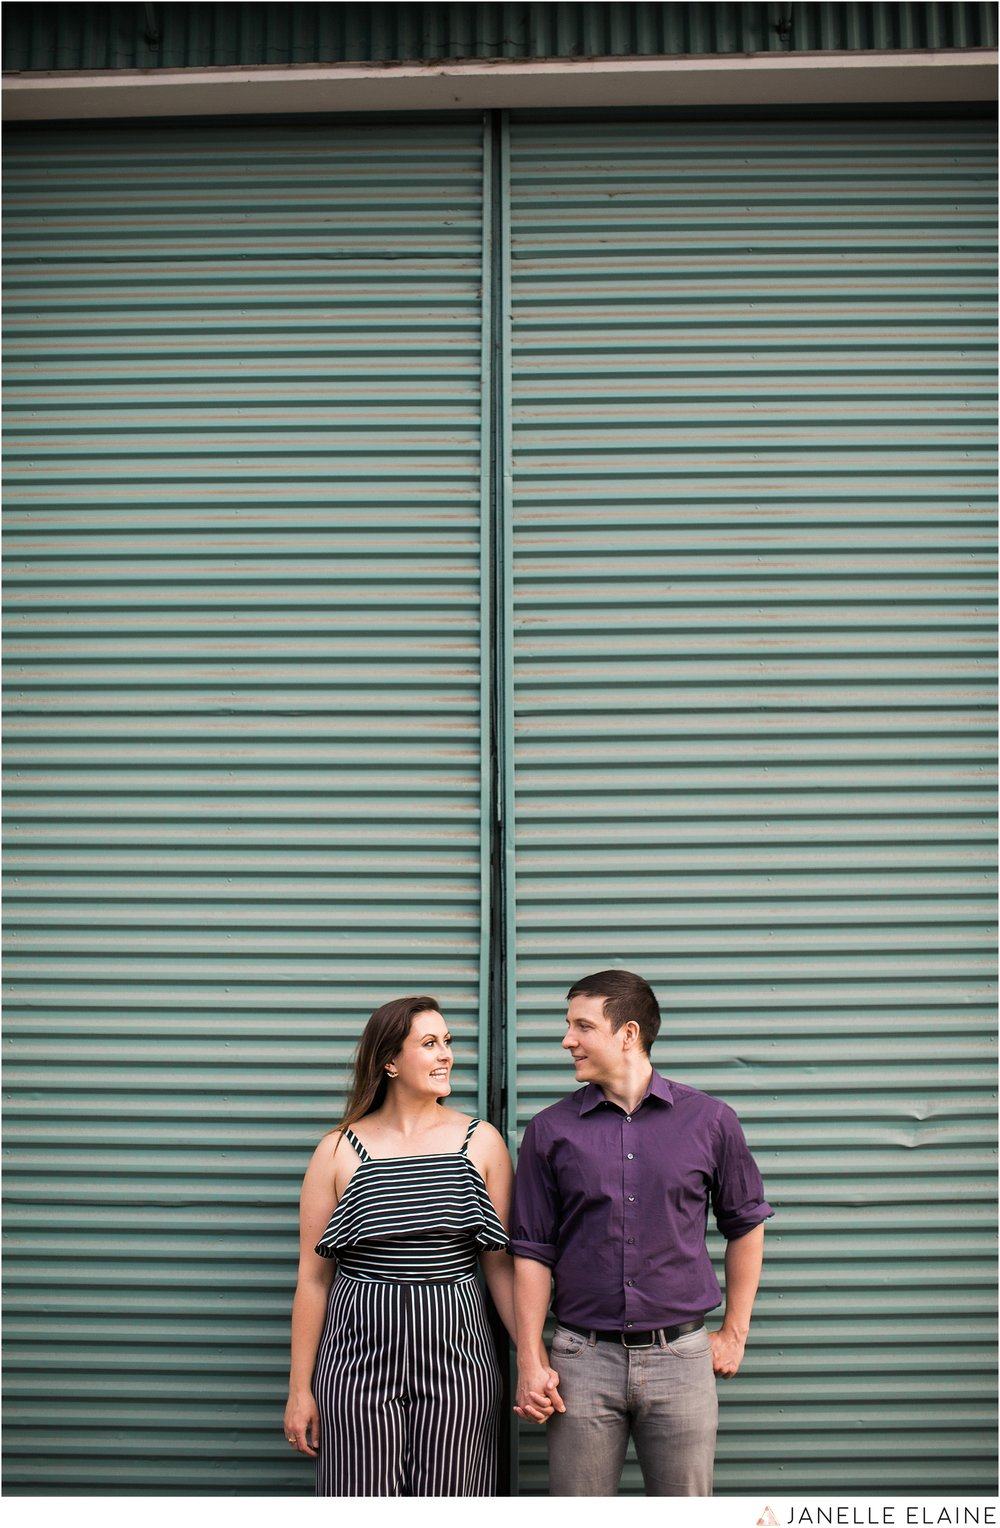 karen ethan-georgetown engagement photos-seattle-janelle elaine photography-189.jpg